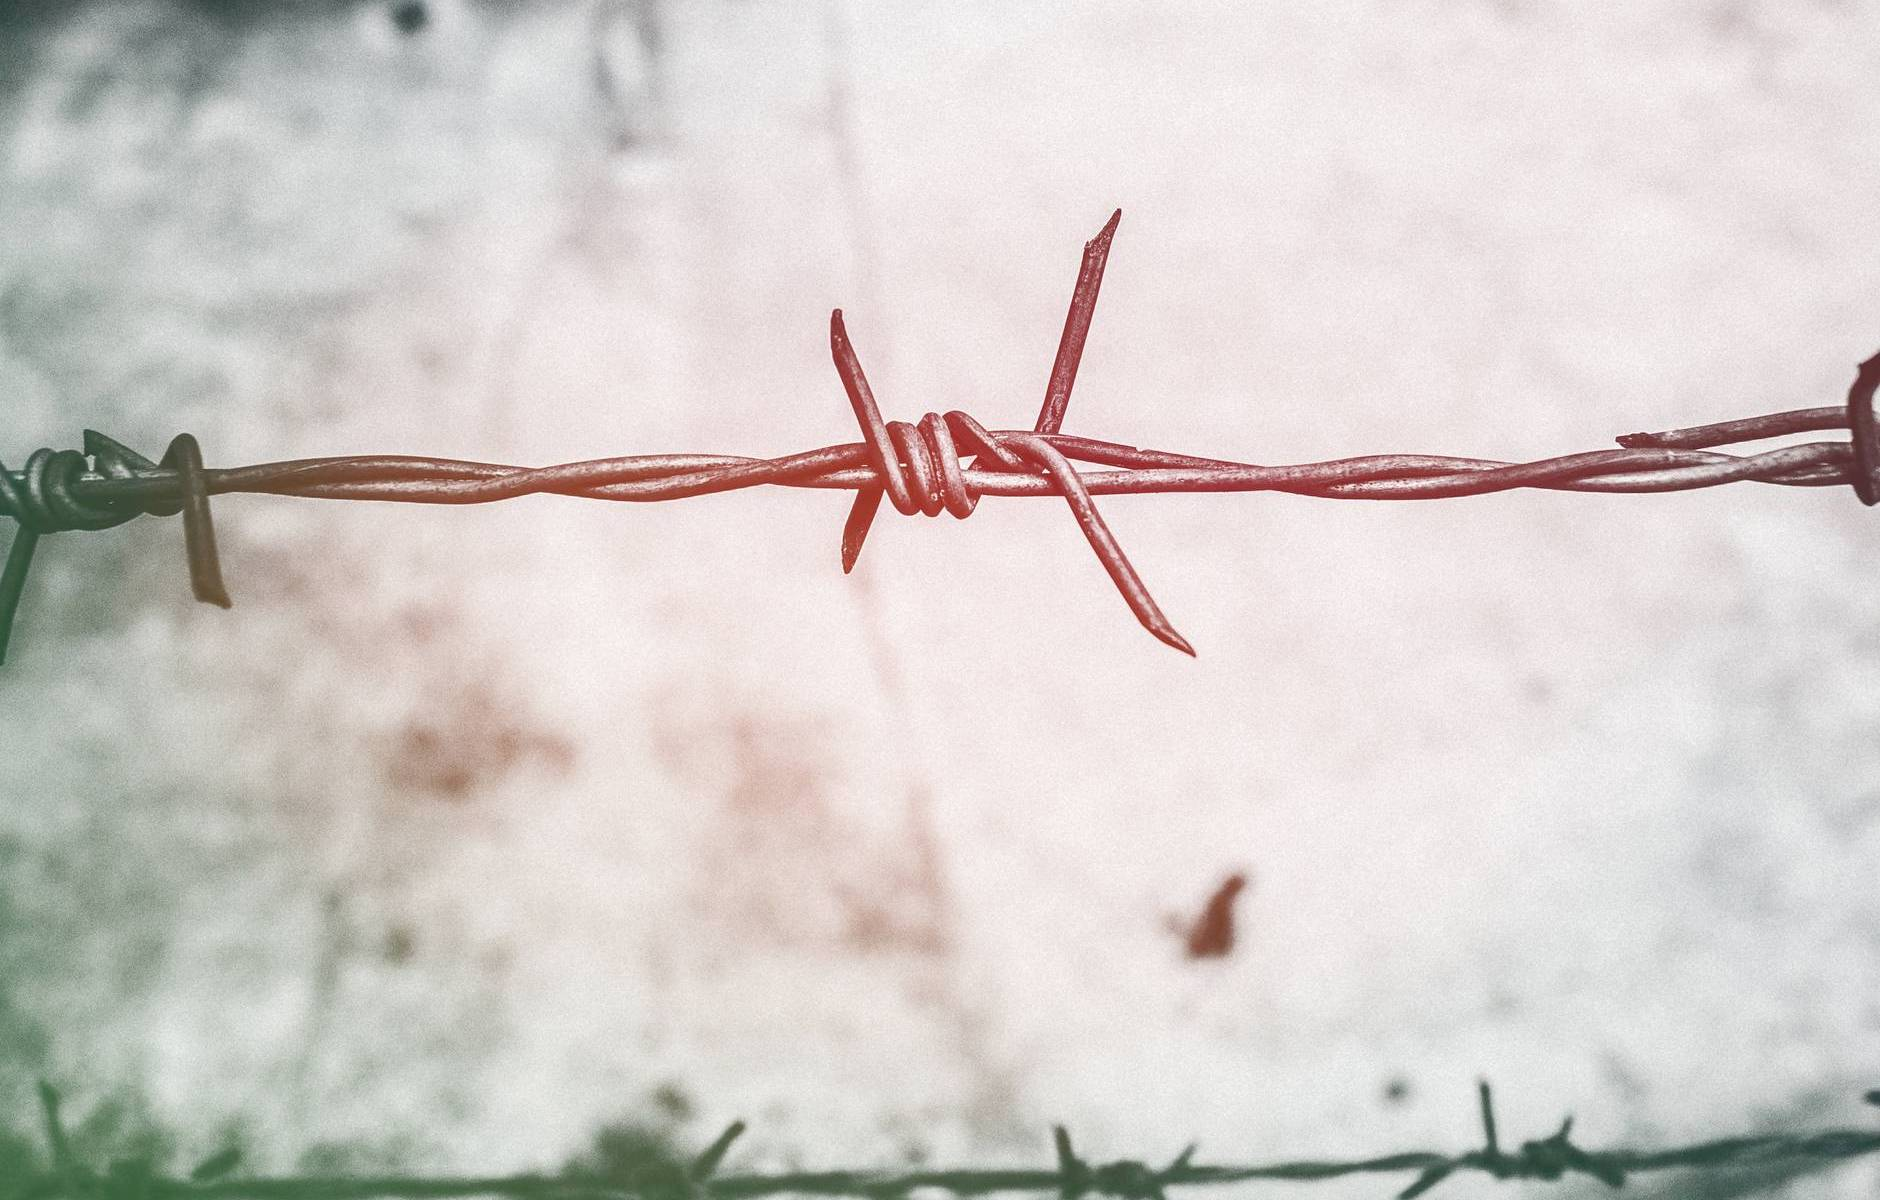 barb wires barbed wire blur border